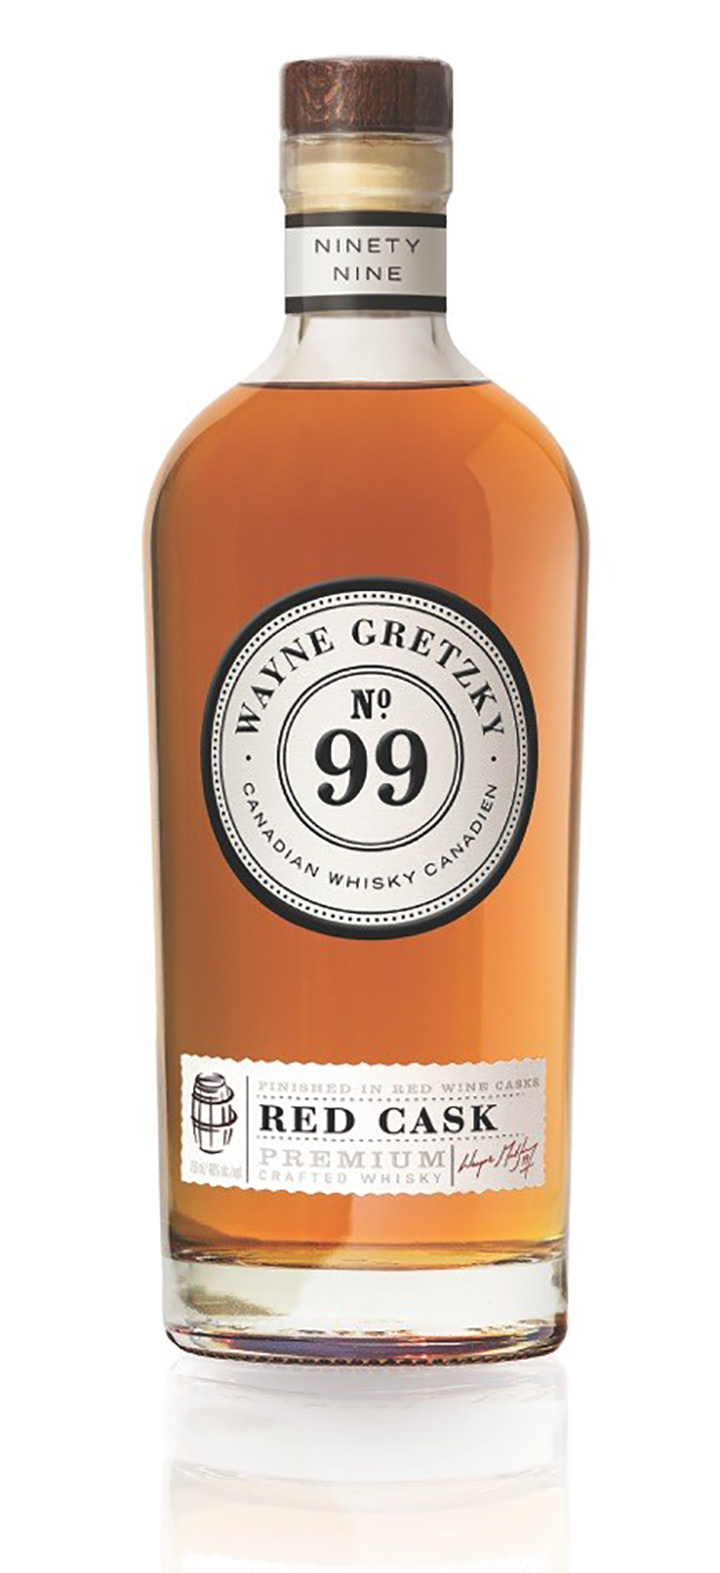 Wayne Gretzky No. 99 'Red Cask' Whisky